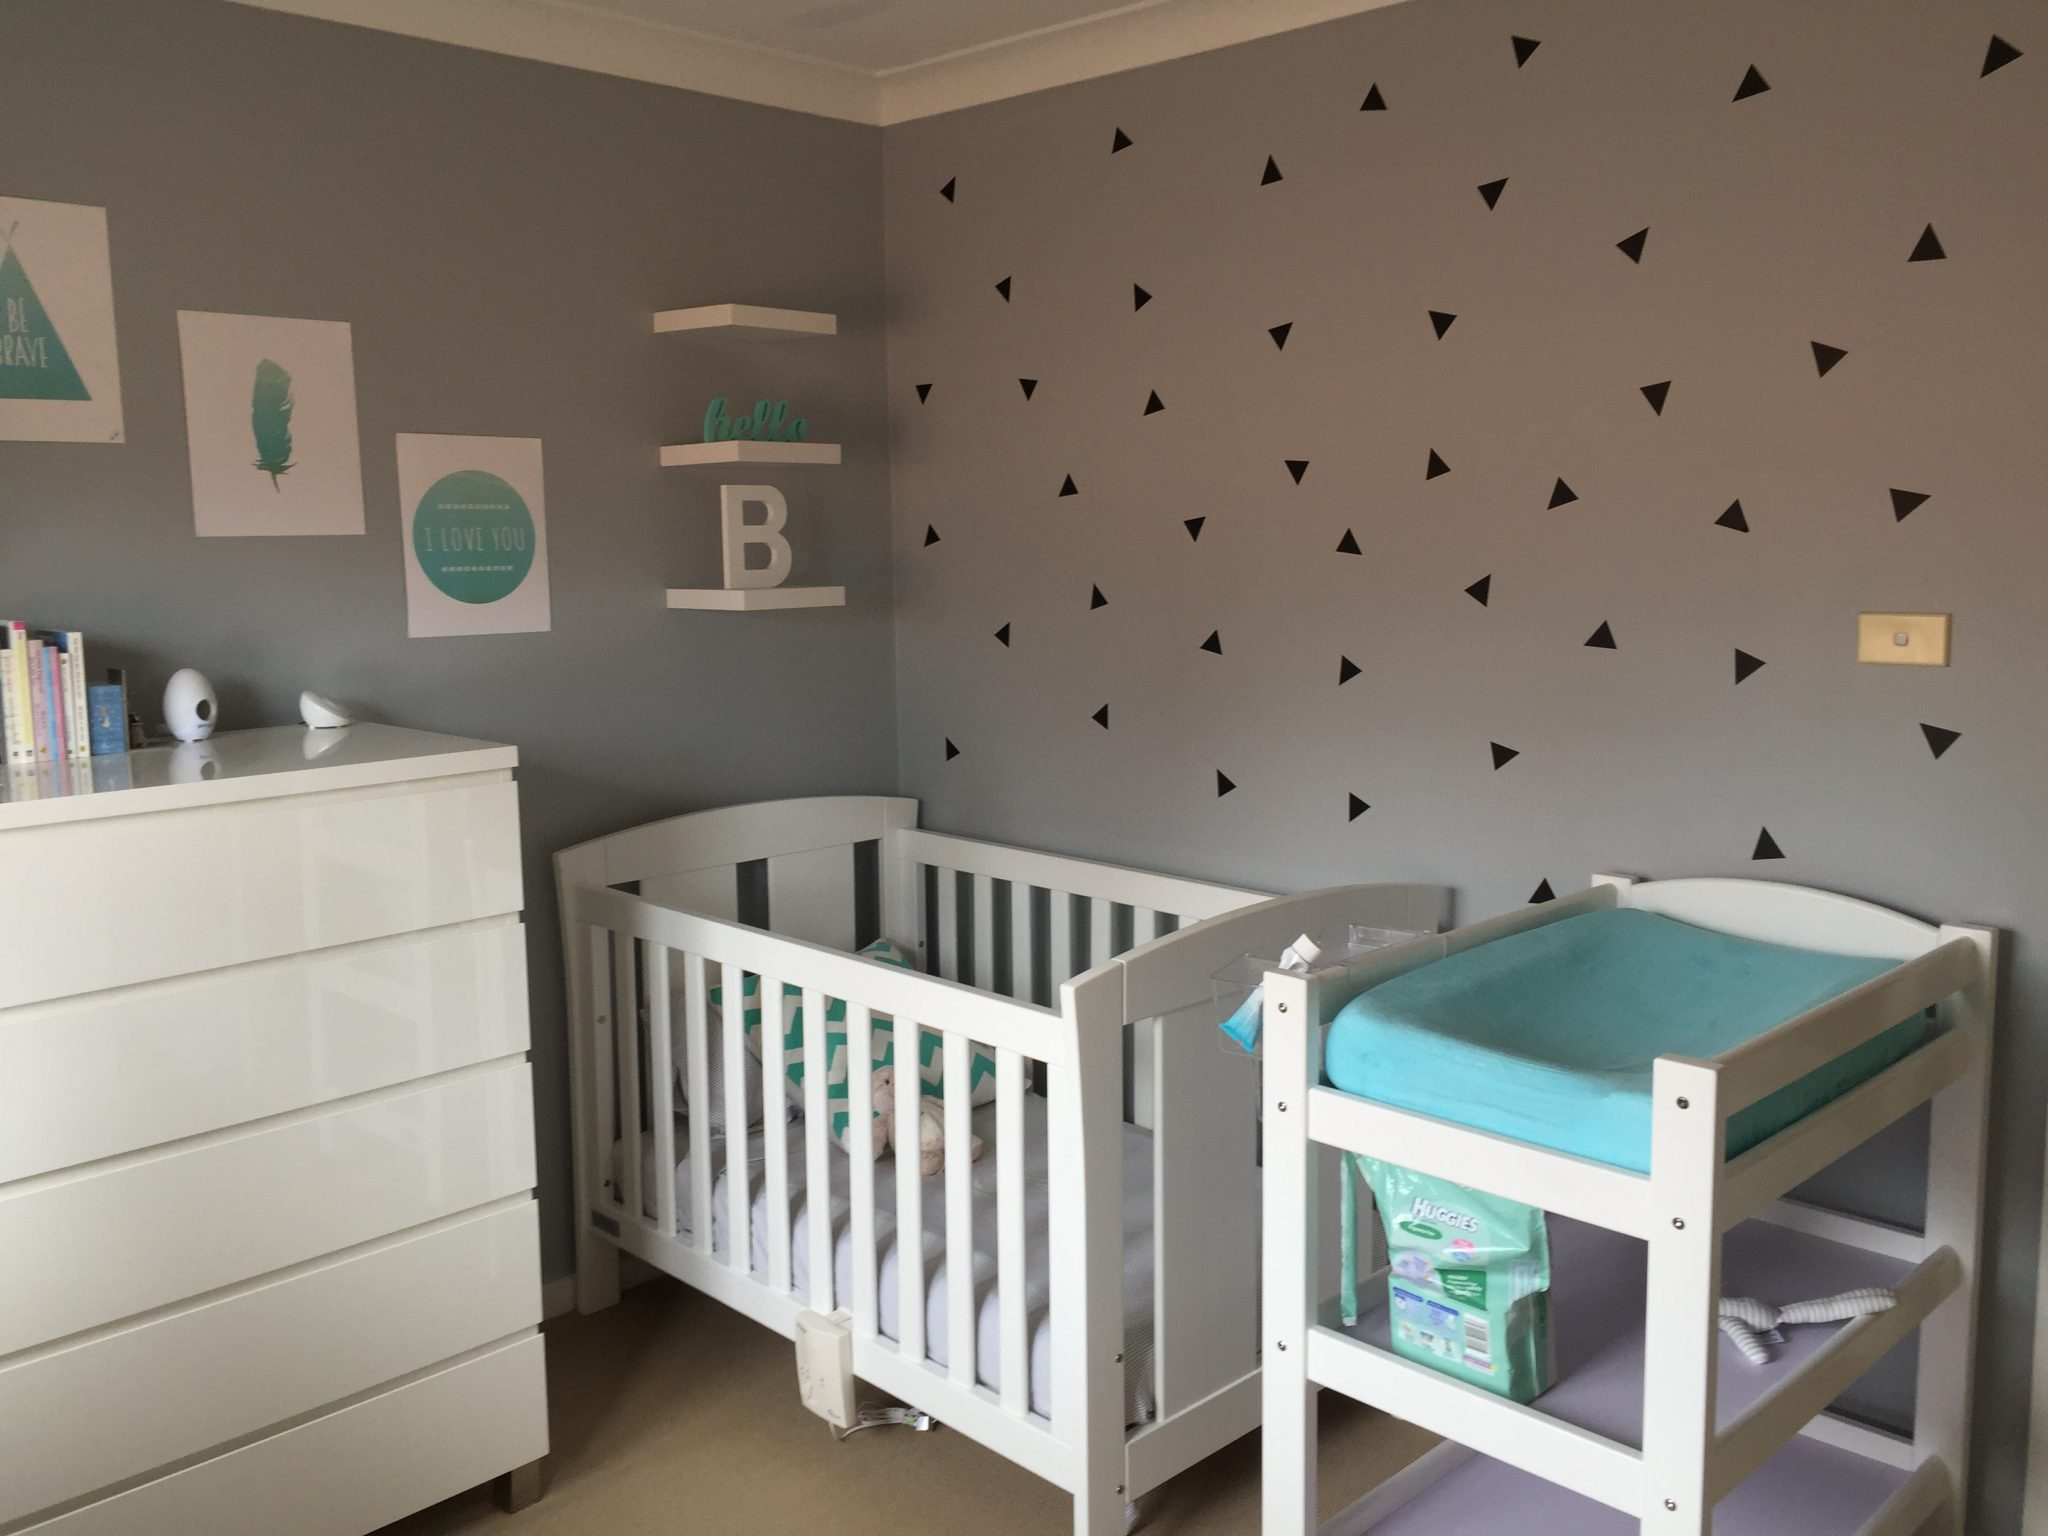 Best Remending removable wall decals as an affordable and on trend way to style a nursery Nicole also highlights funky book ledges storage that can be